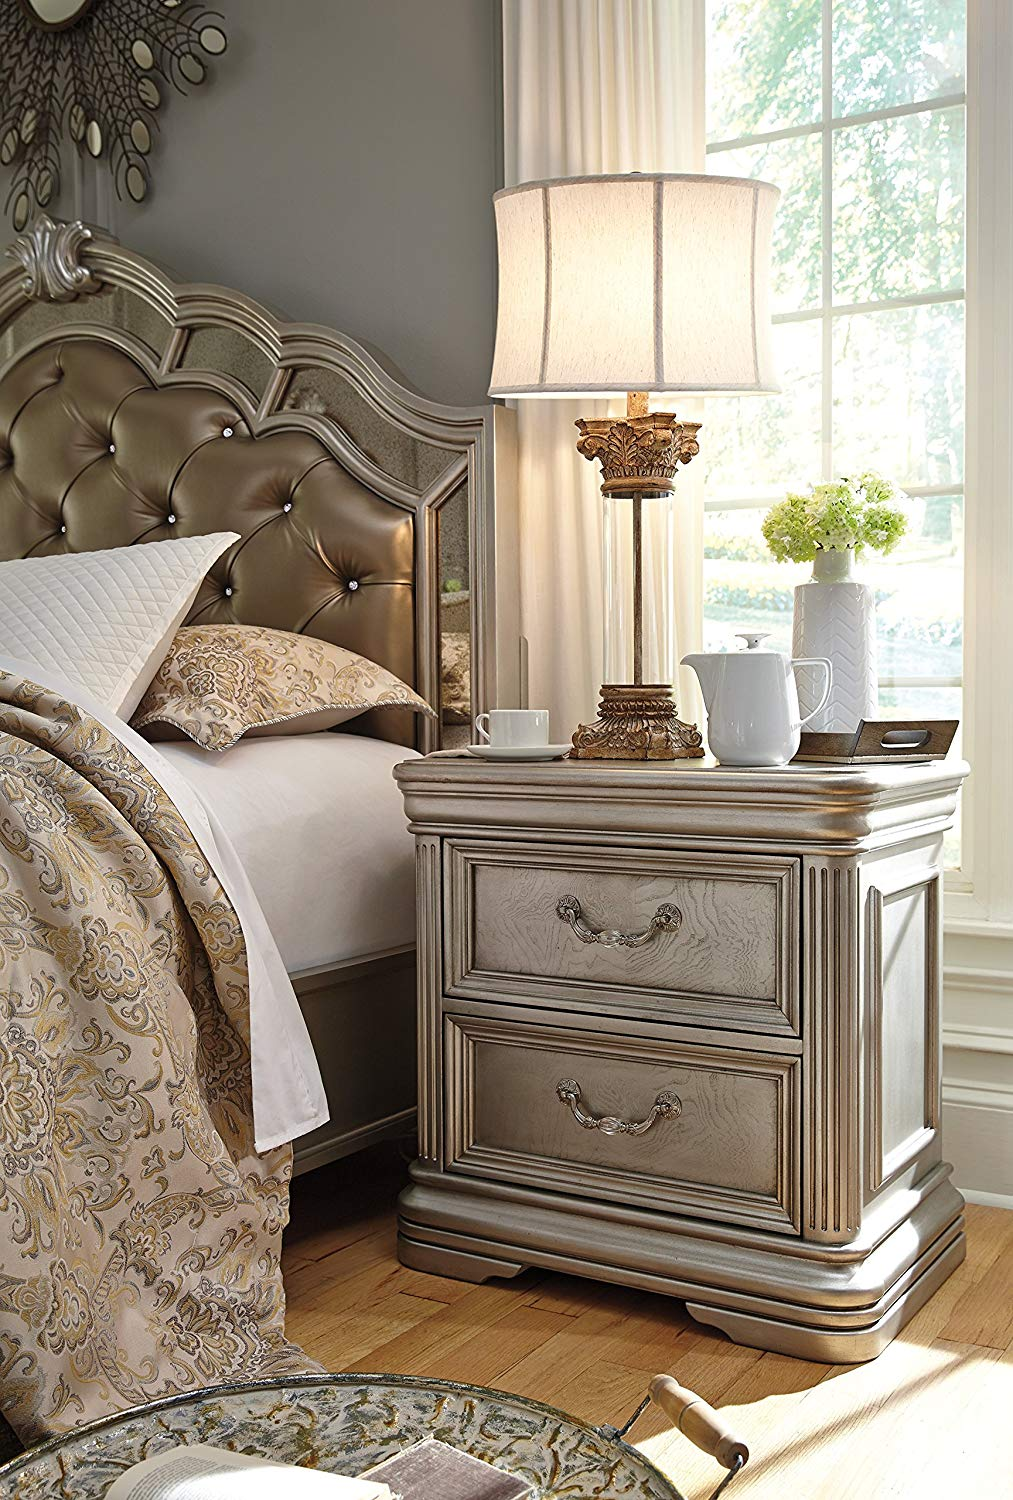 2-Nightstands